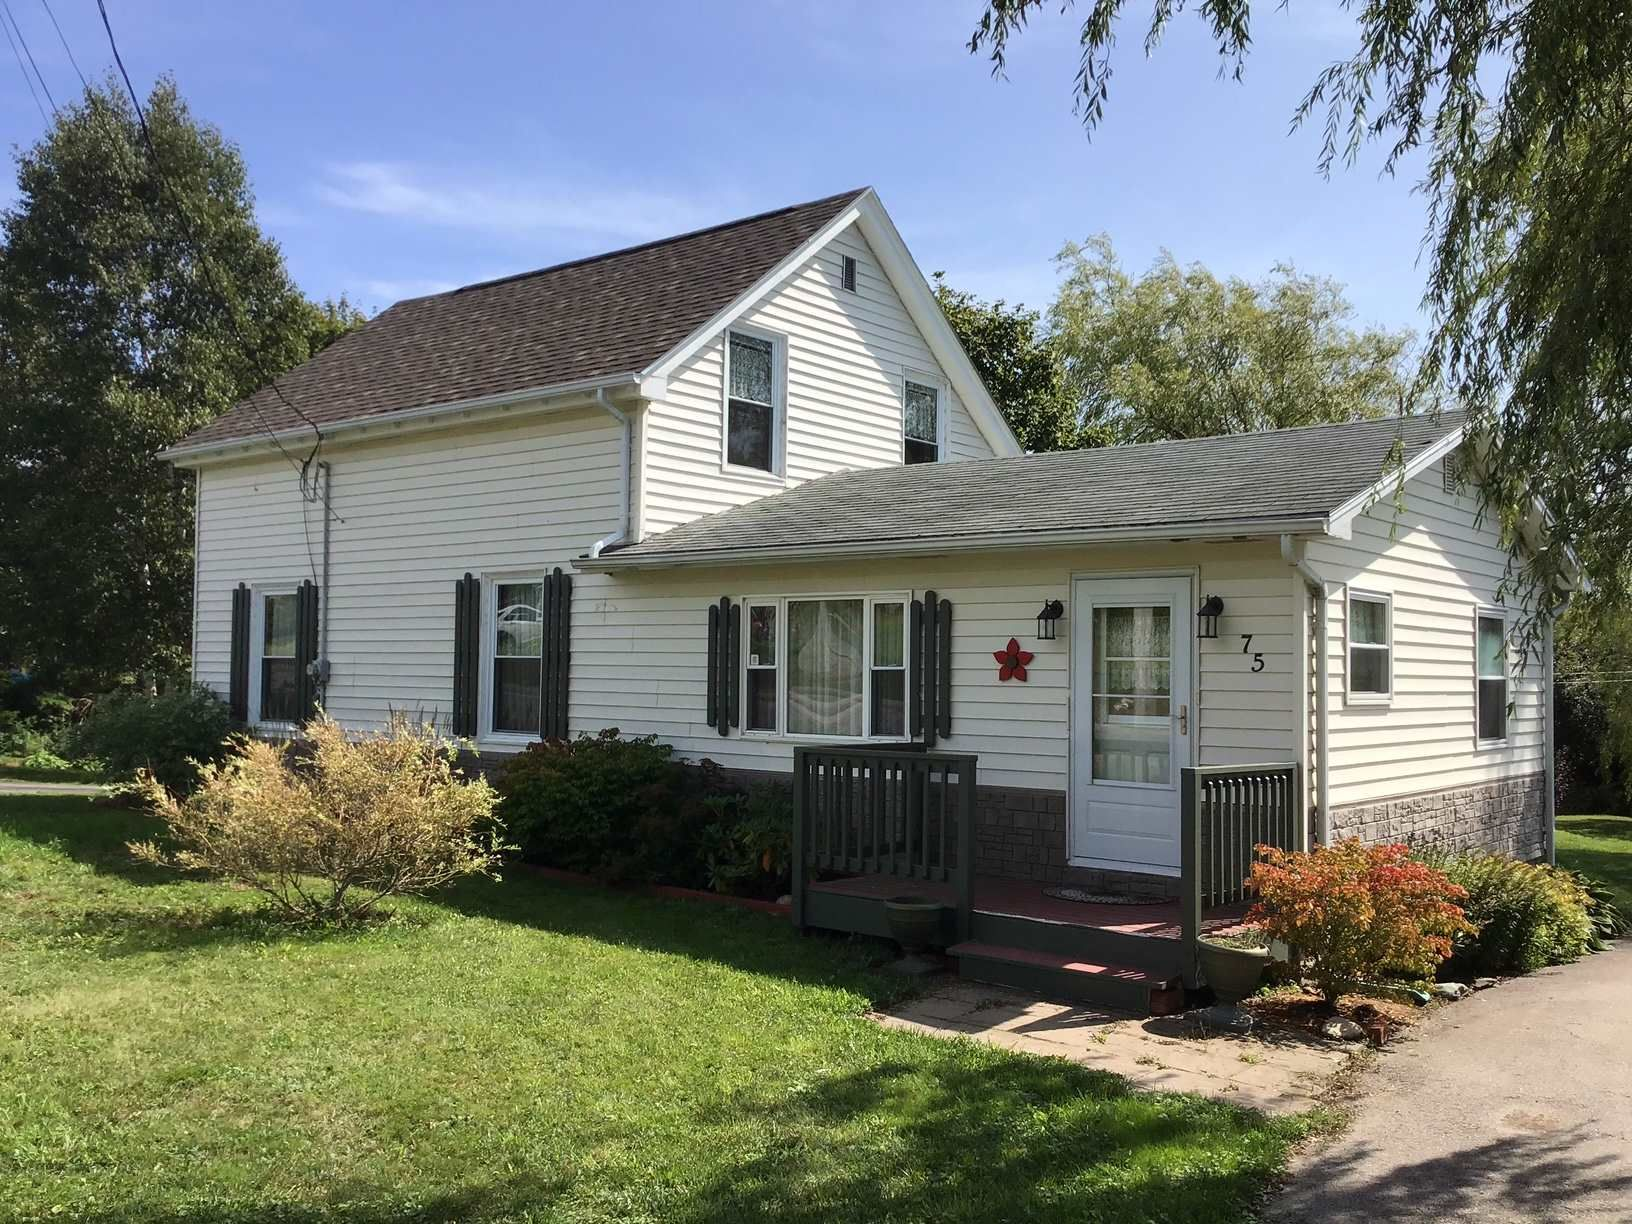 Main Photo: 75 CHURCH Street in Digby: 401-Digby County Residential for sale (Annapolis Valley)  : MLS®# 202107320